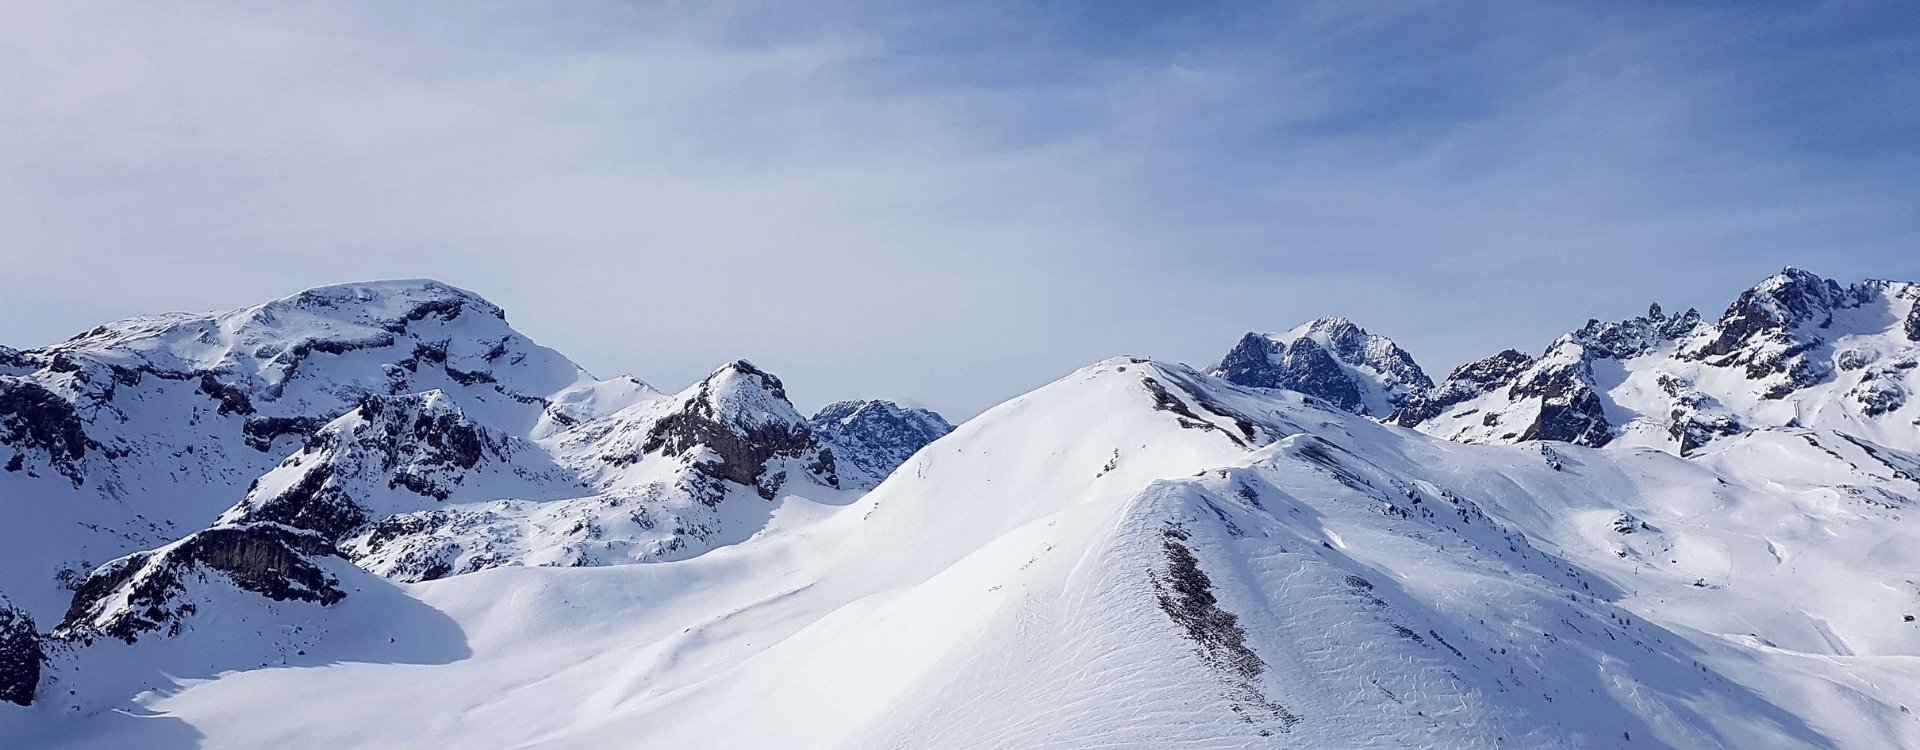 Gupt Khal Expedition in Winter